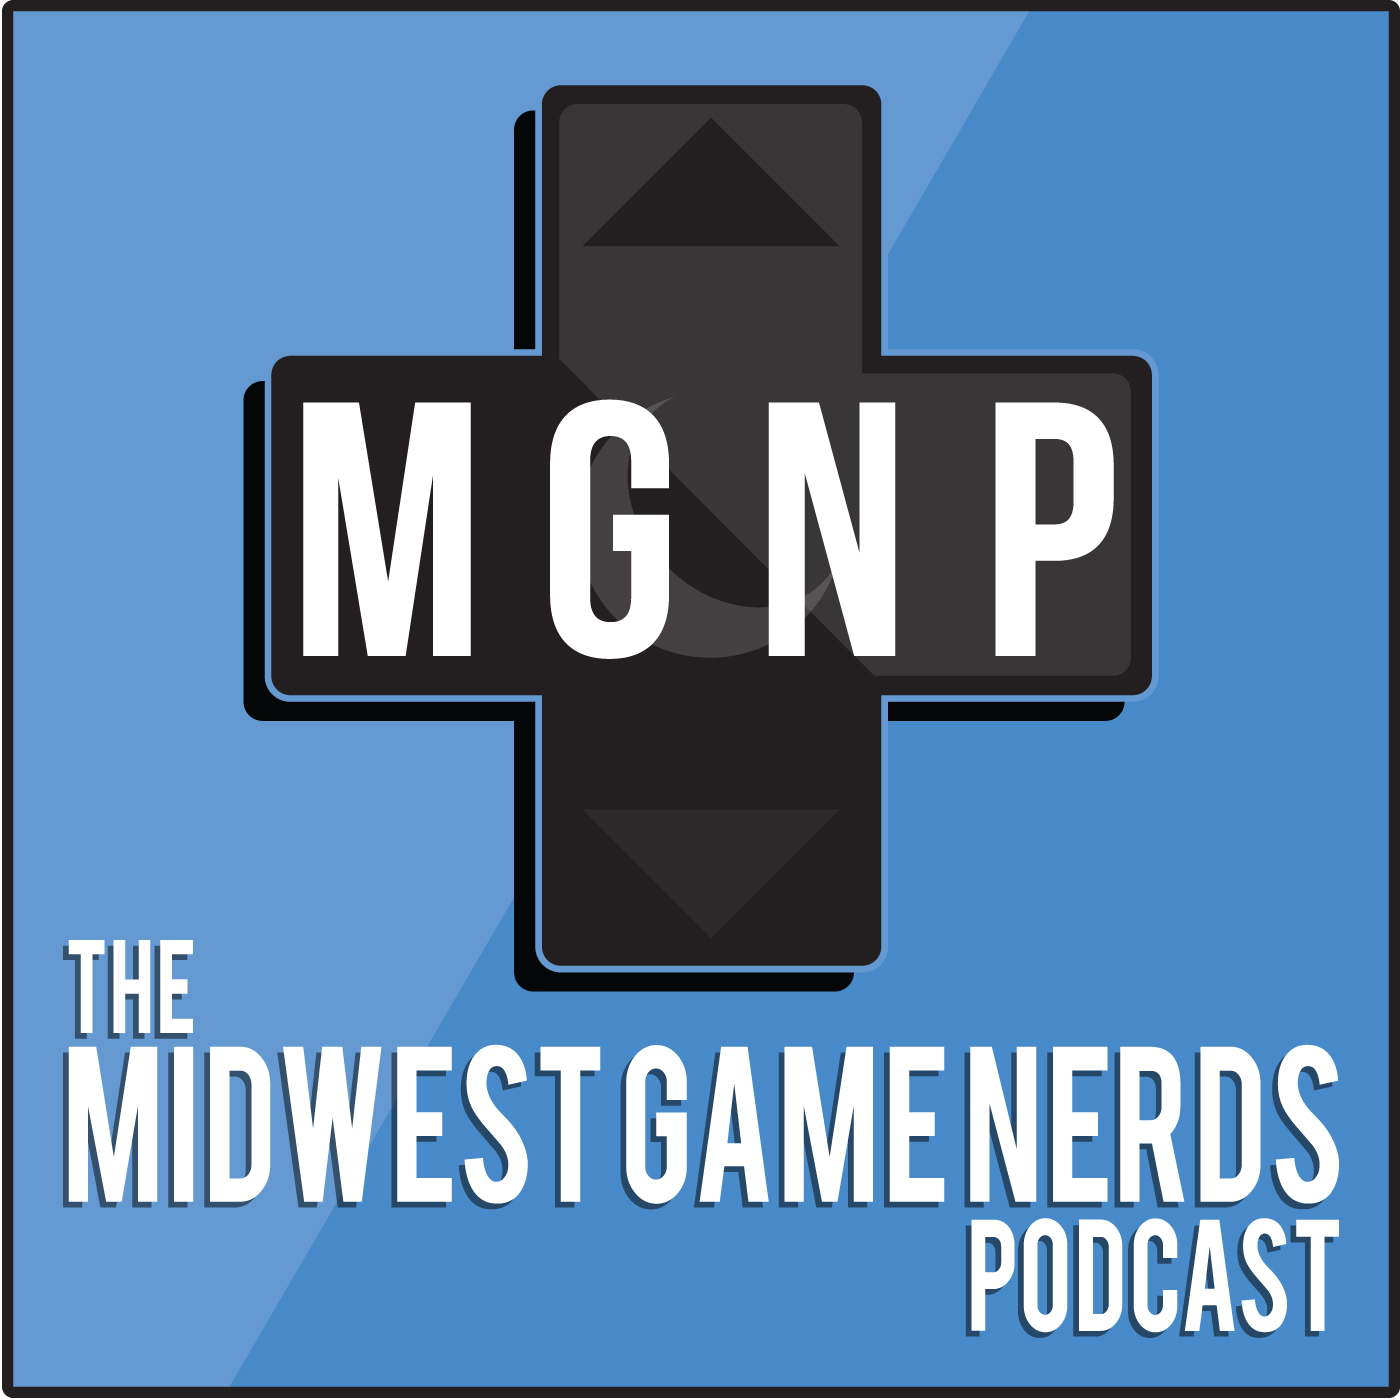 Midwest Game Nerds Podcast